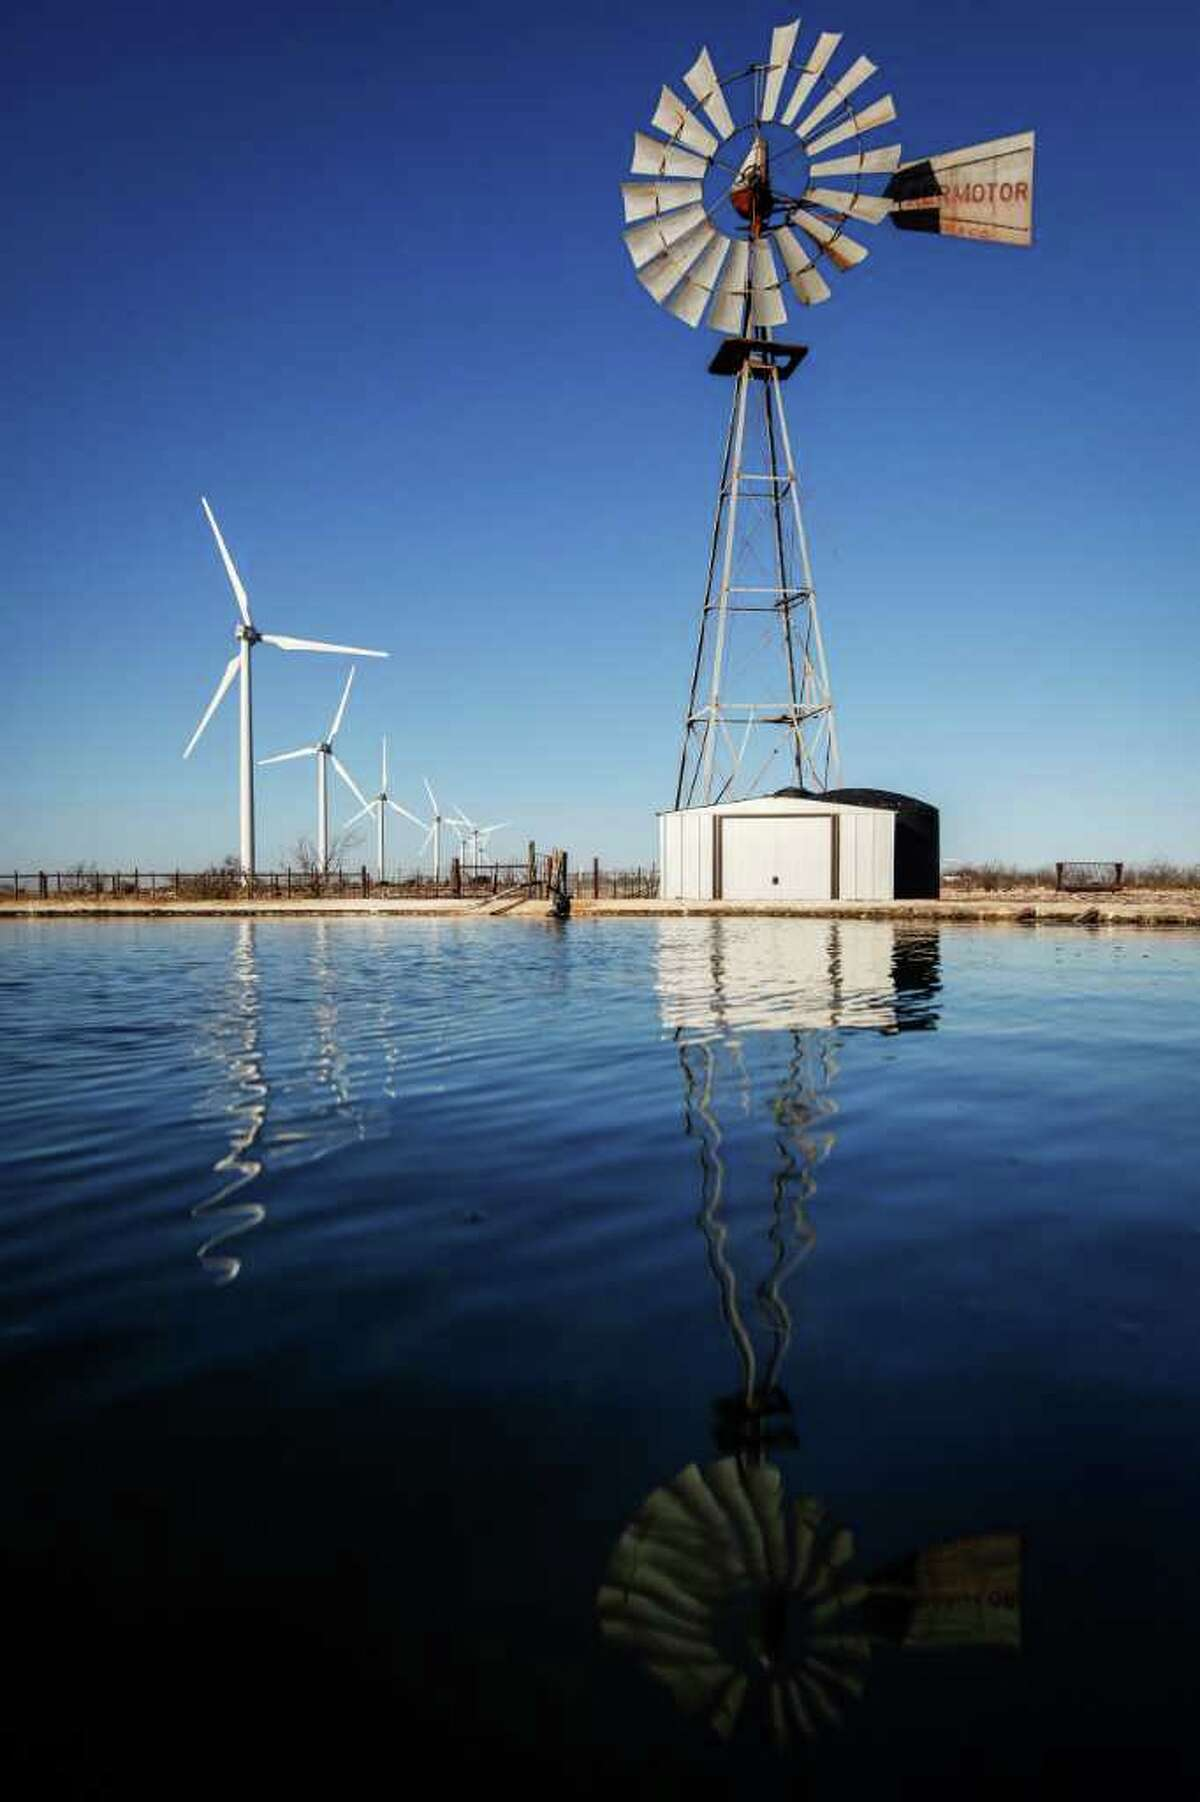 An old windmill is situated near several wind turbines at BP's Sherbino 2 wind farm near Fort Stockton.